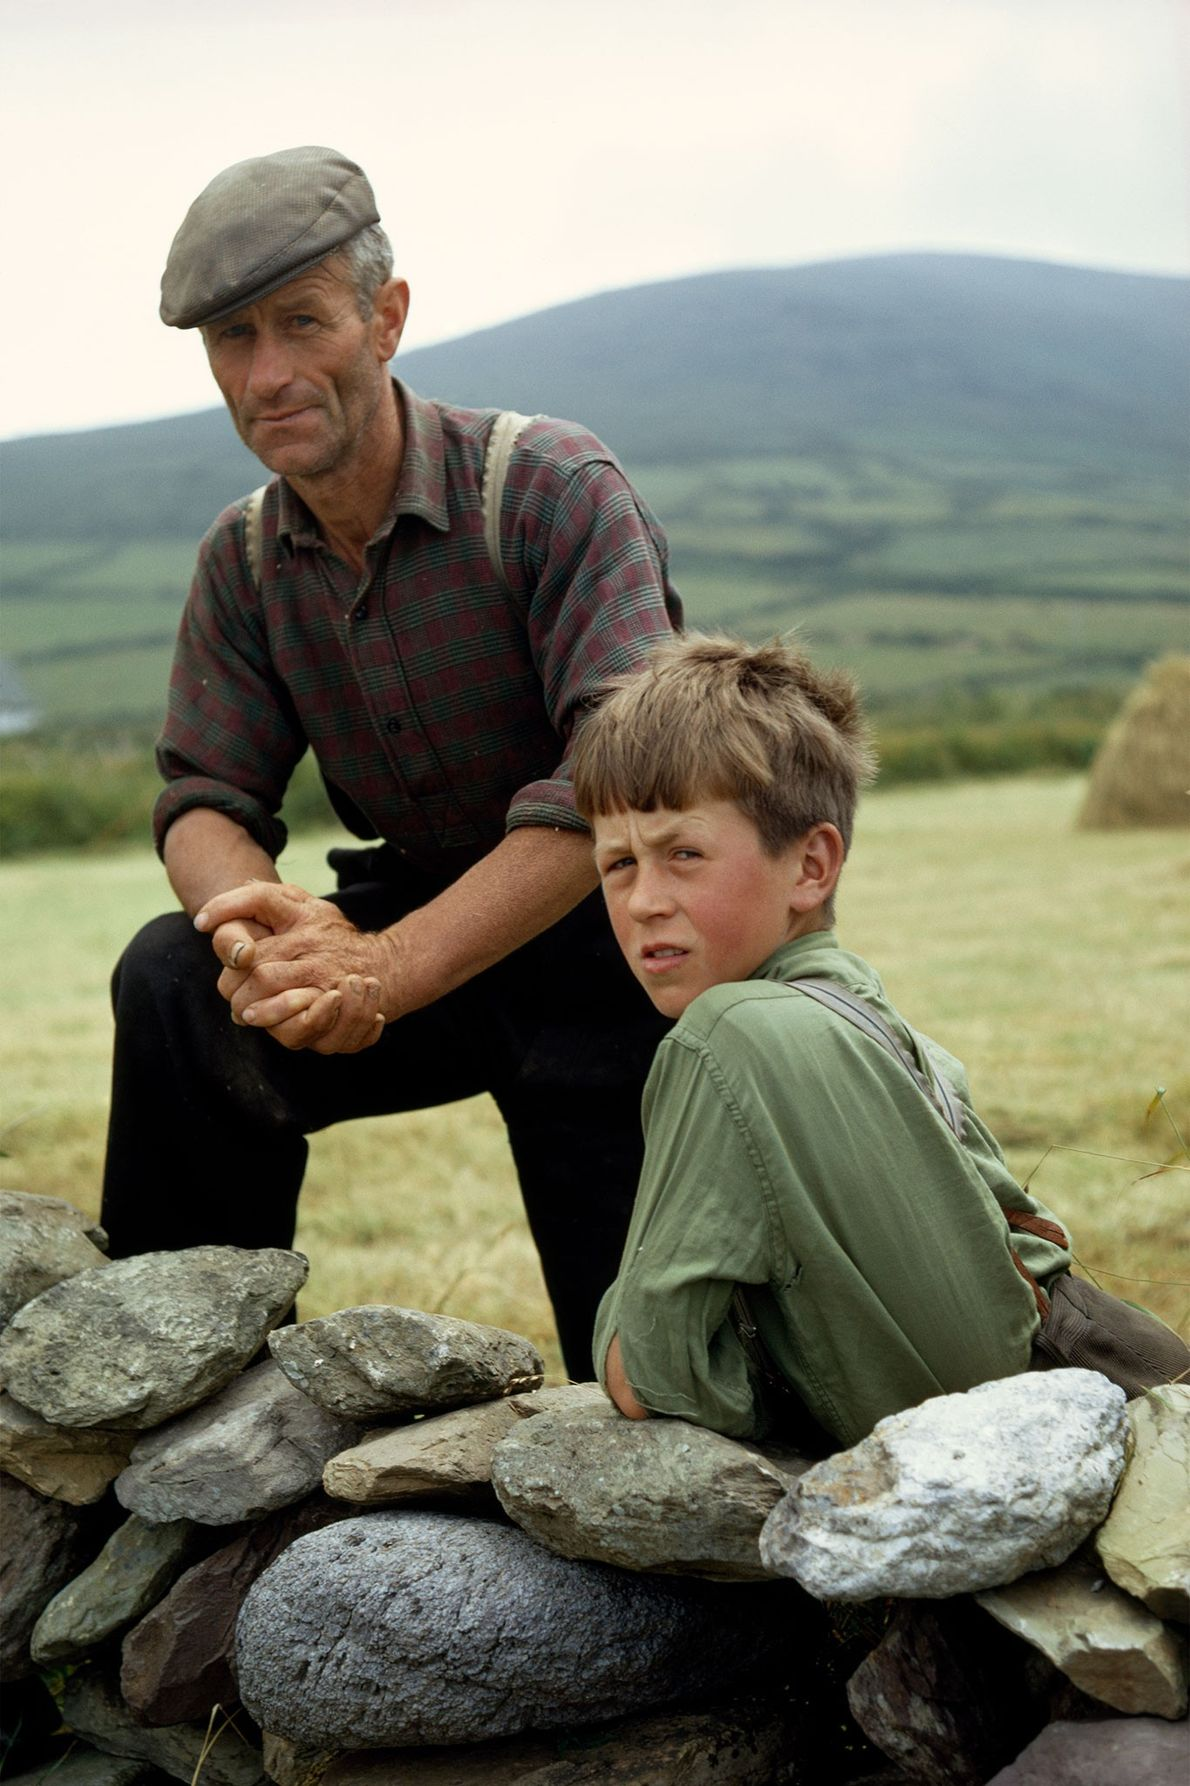 An Irish father-and-son farmer duo pause near a stone wall for a portrait on the Dingle ...